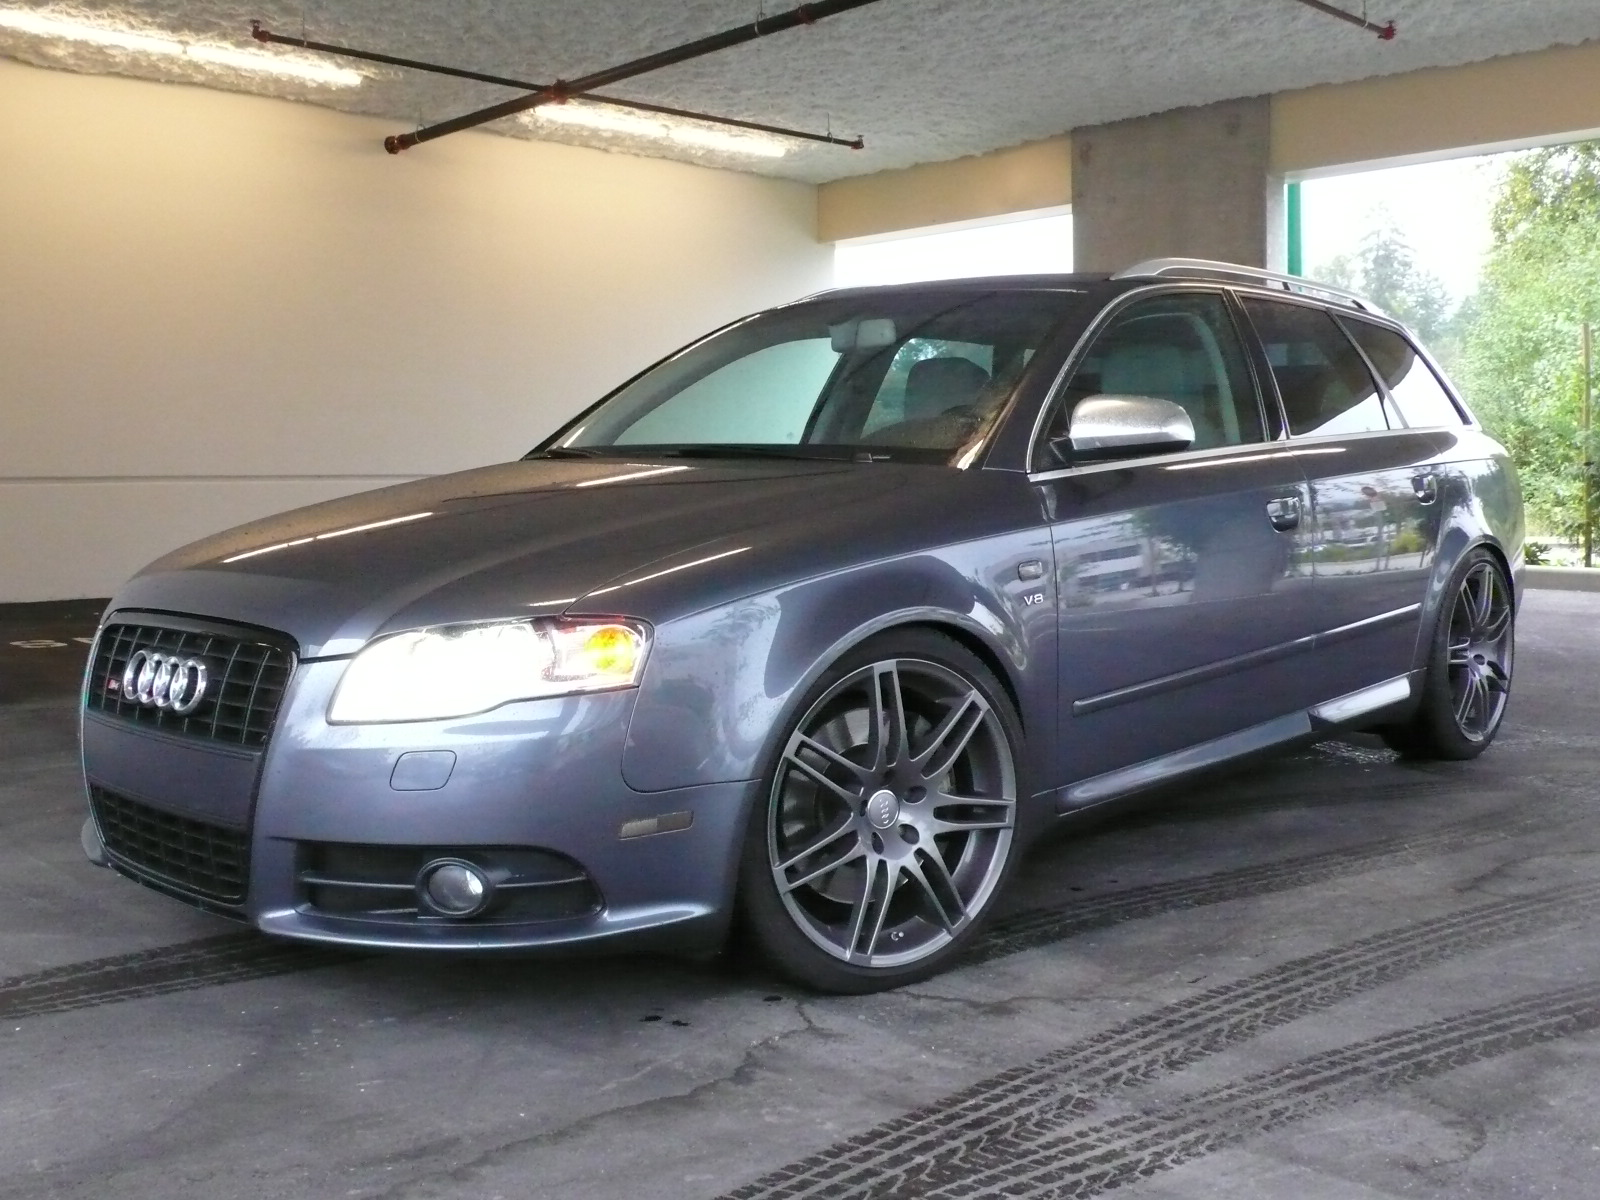 Audi Oemreplica Wheels On A B6b7 S4rs4 Picture Thread